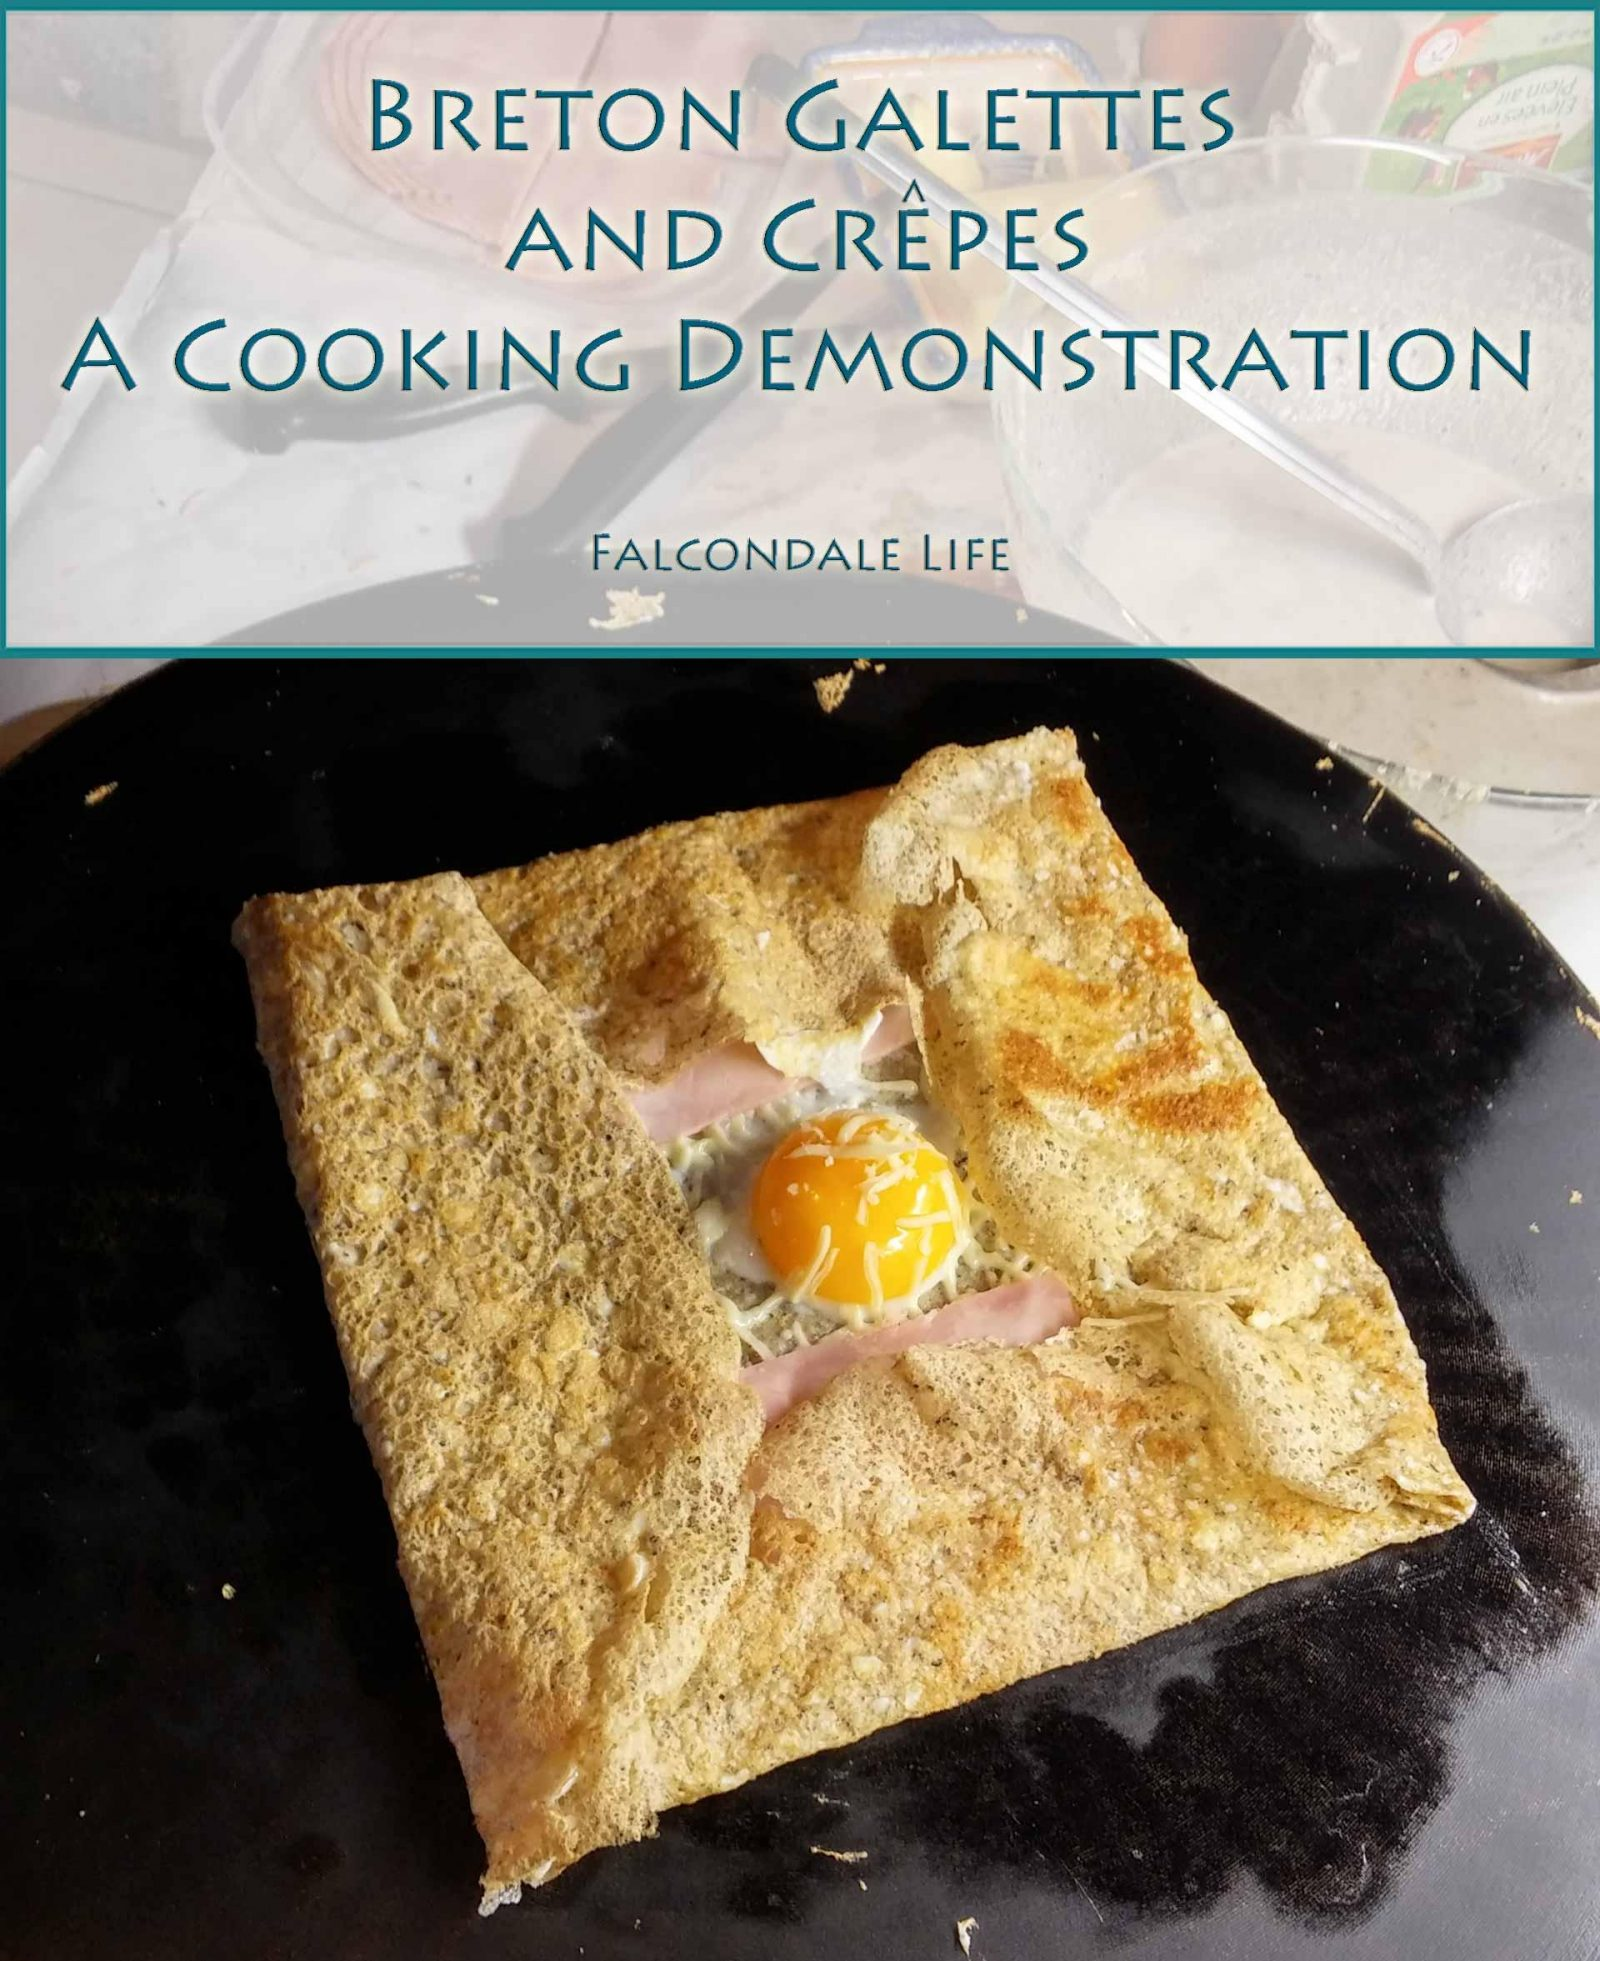 Breton Galettes and Crêpes – A Cooking Demonstration